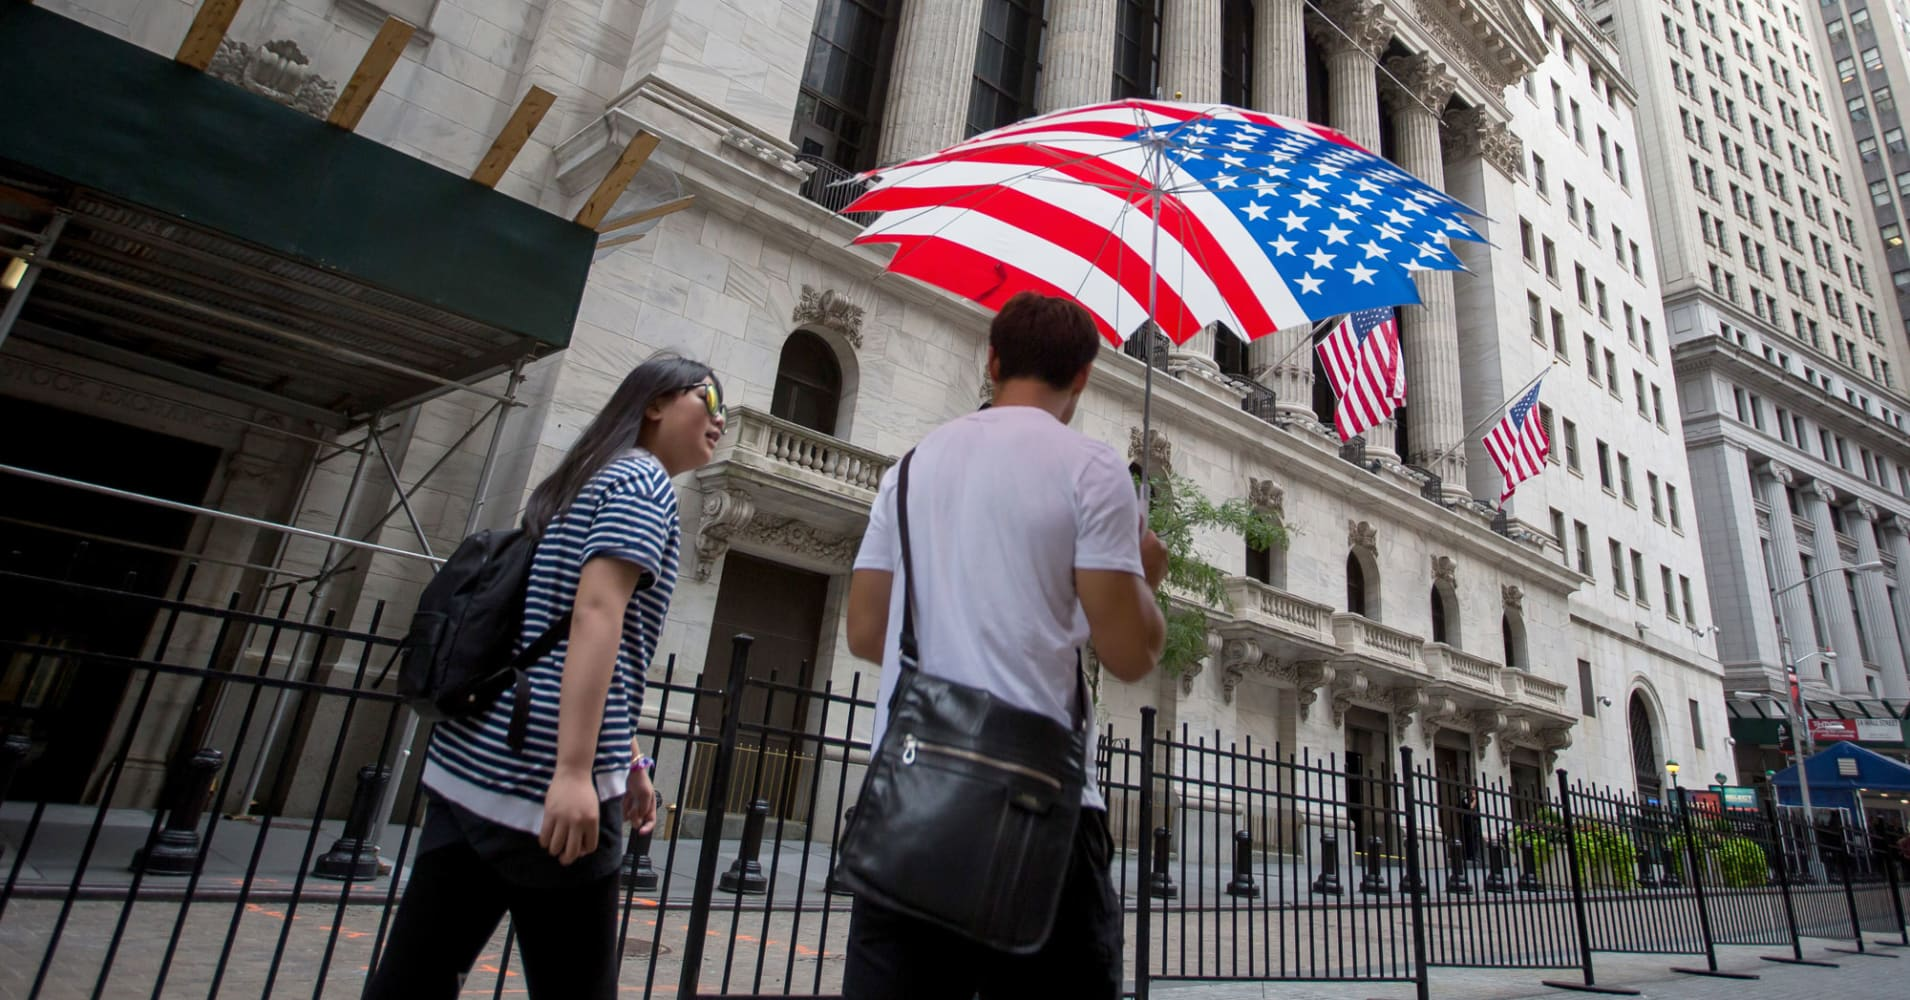 US economic fundamentals are good. Don't overreact to trade issues